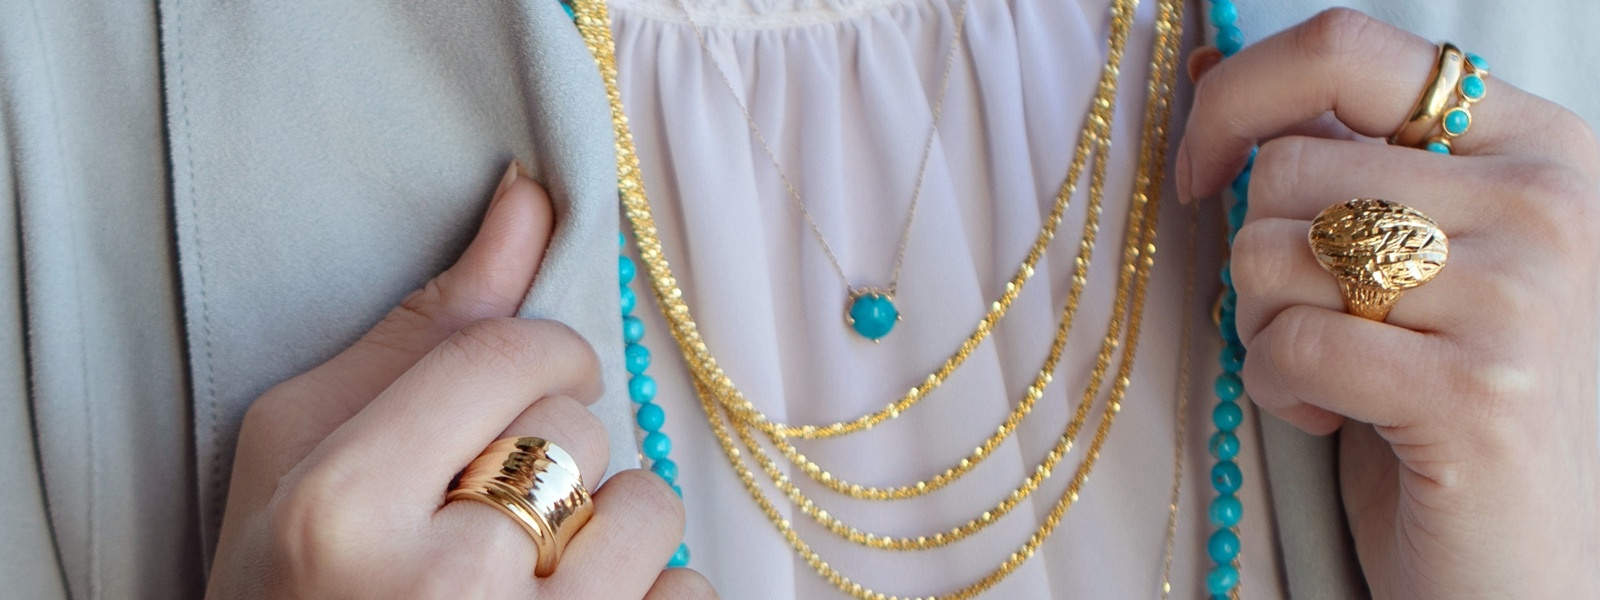 Spring Trend - Layering Necklaces